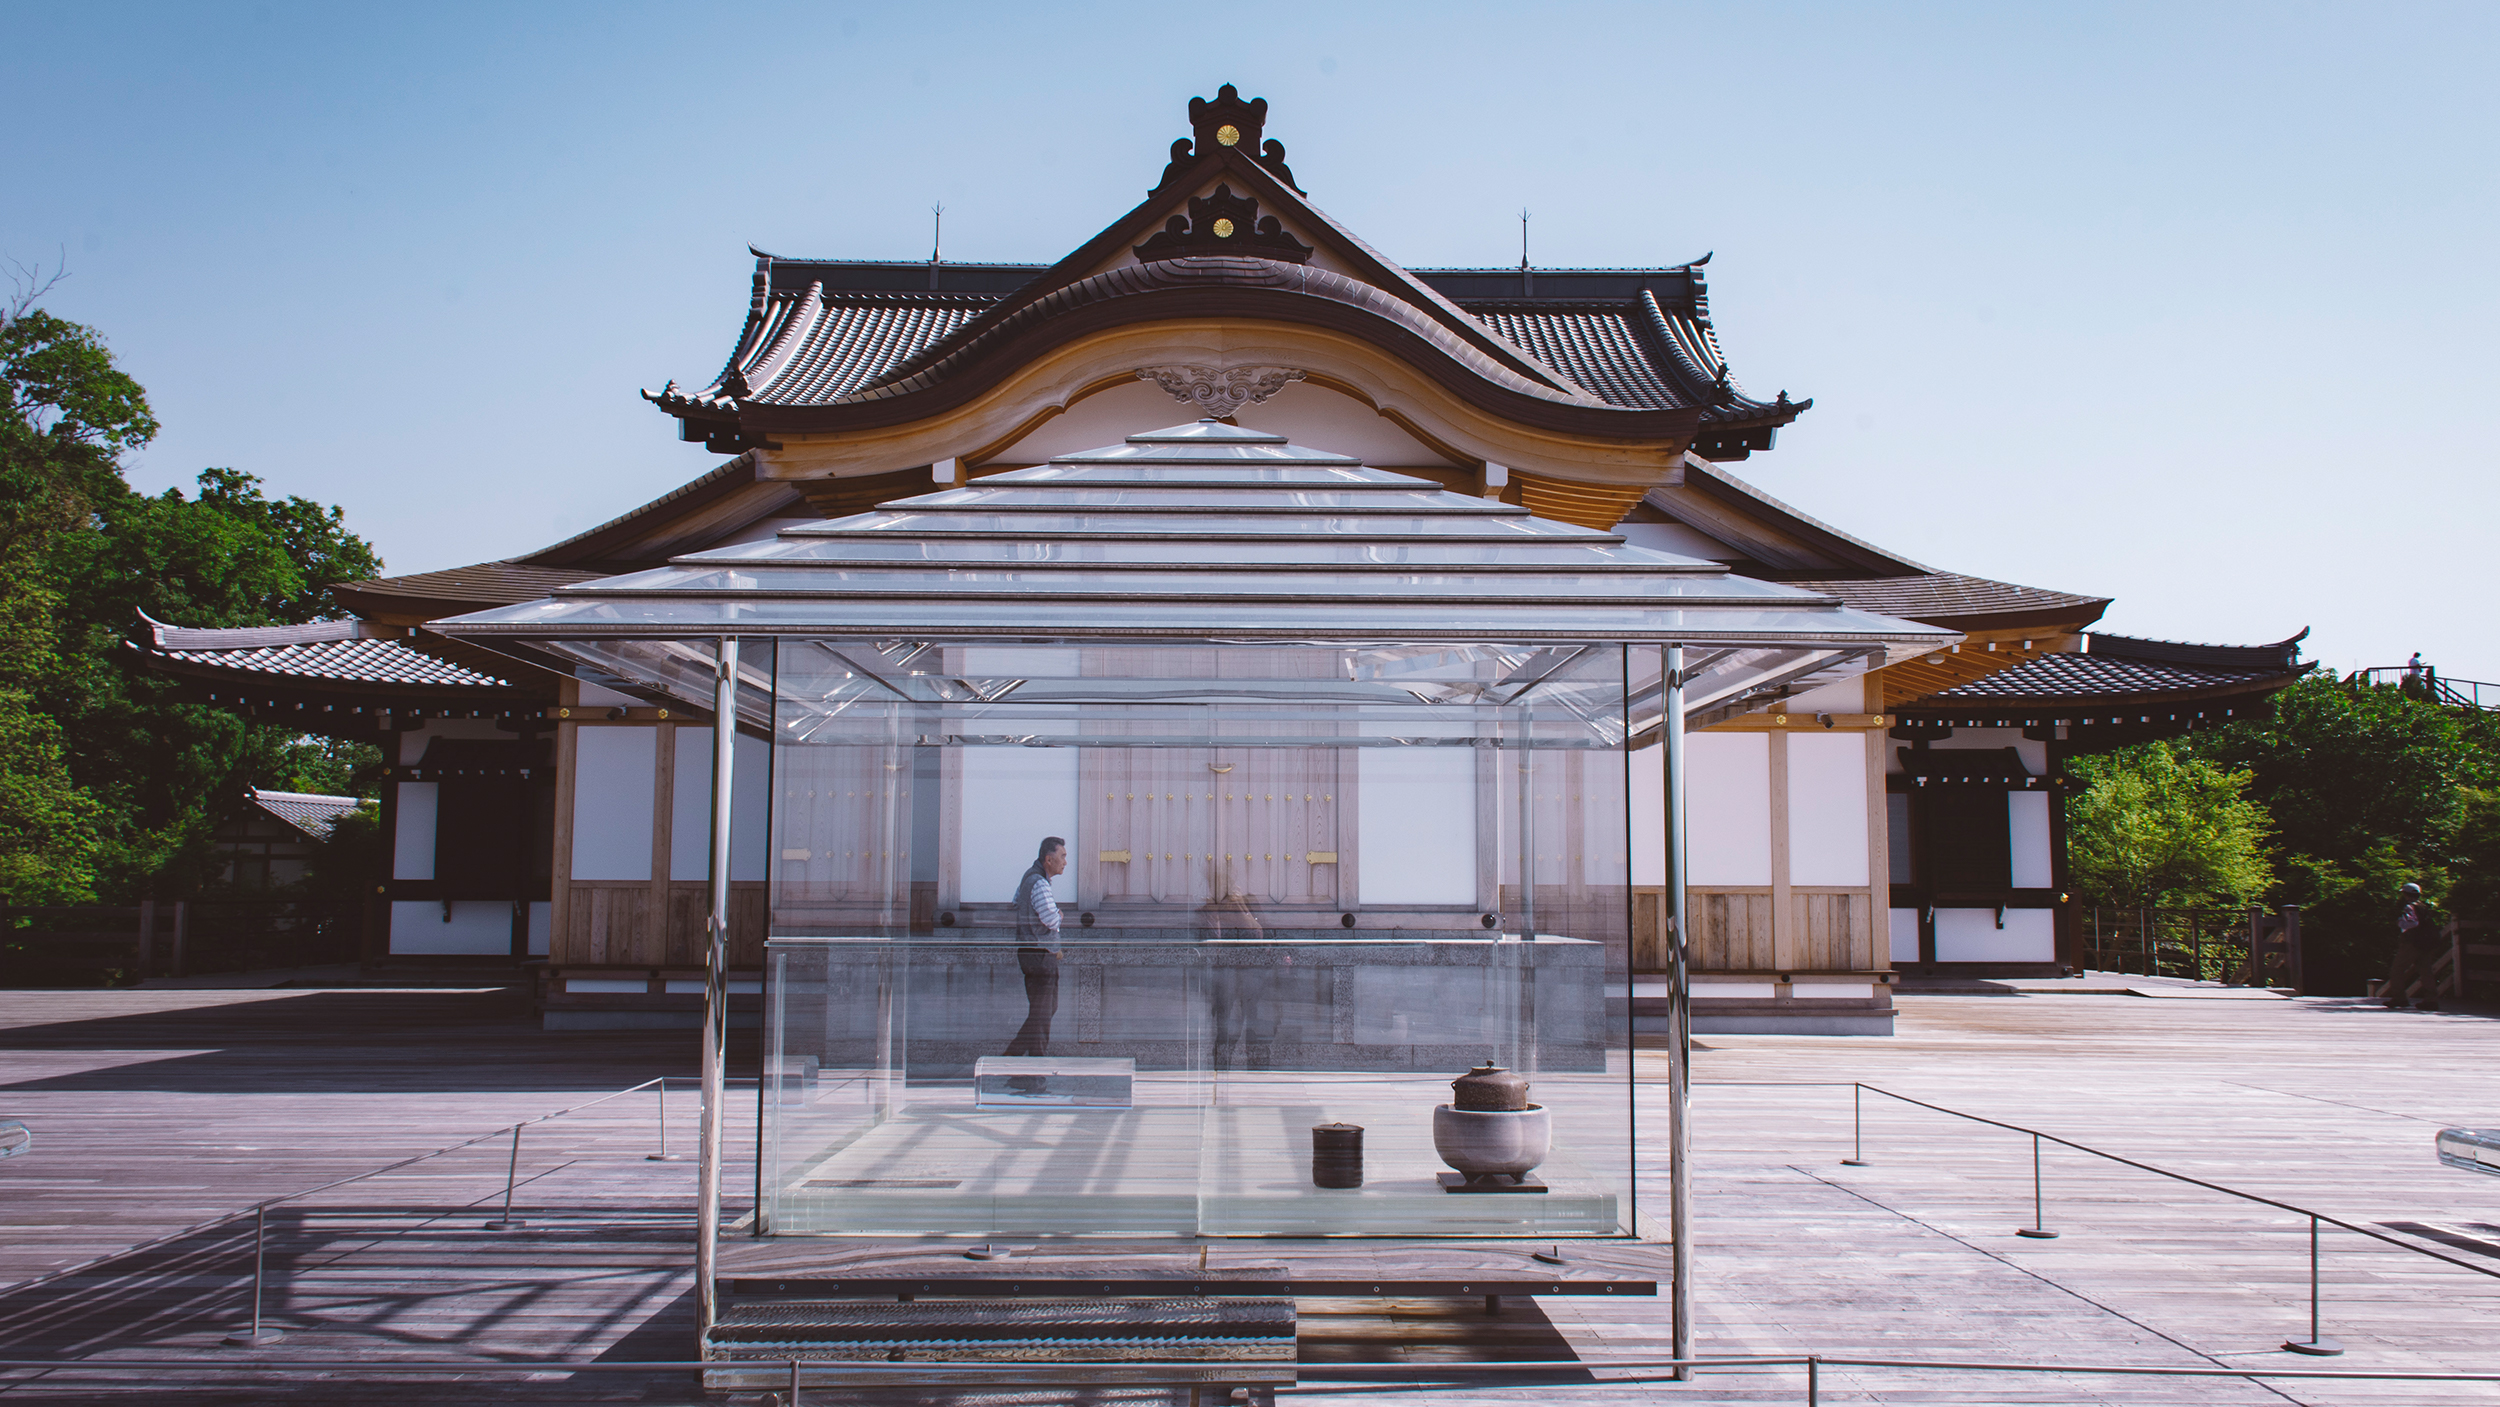 Seiryuden Temple. Kyoto. It features a glass temple installation on its observation deck.